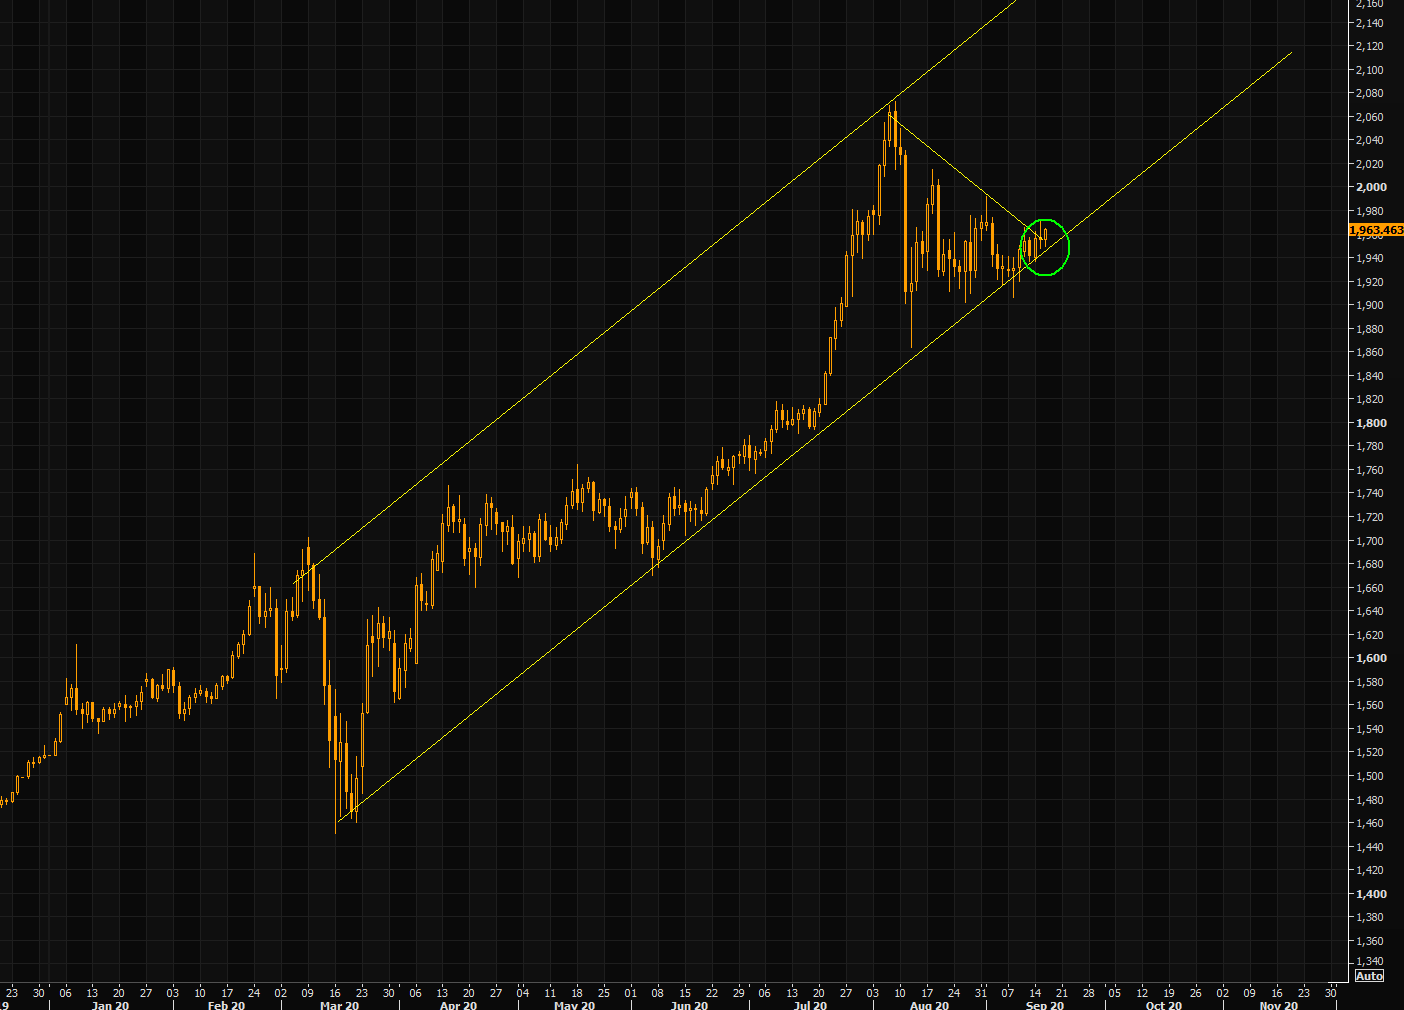 Gold - will the trajectory higher reignite?